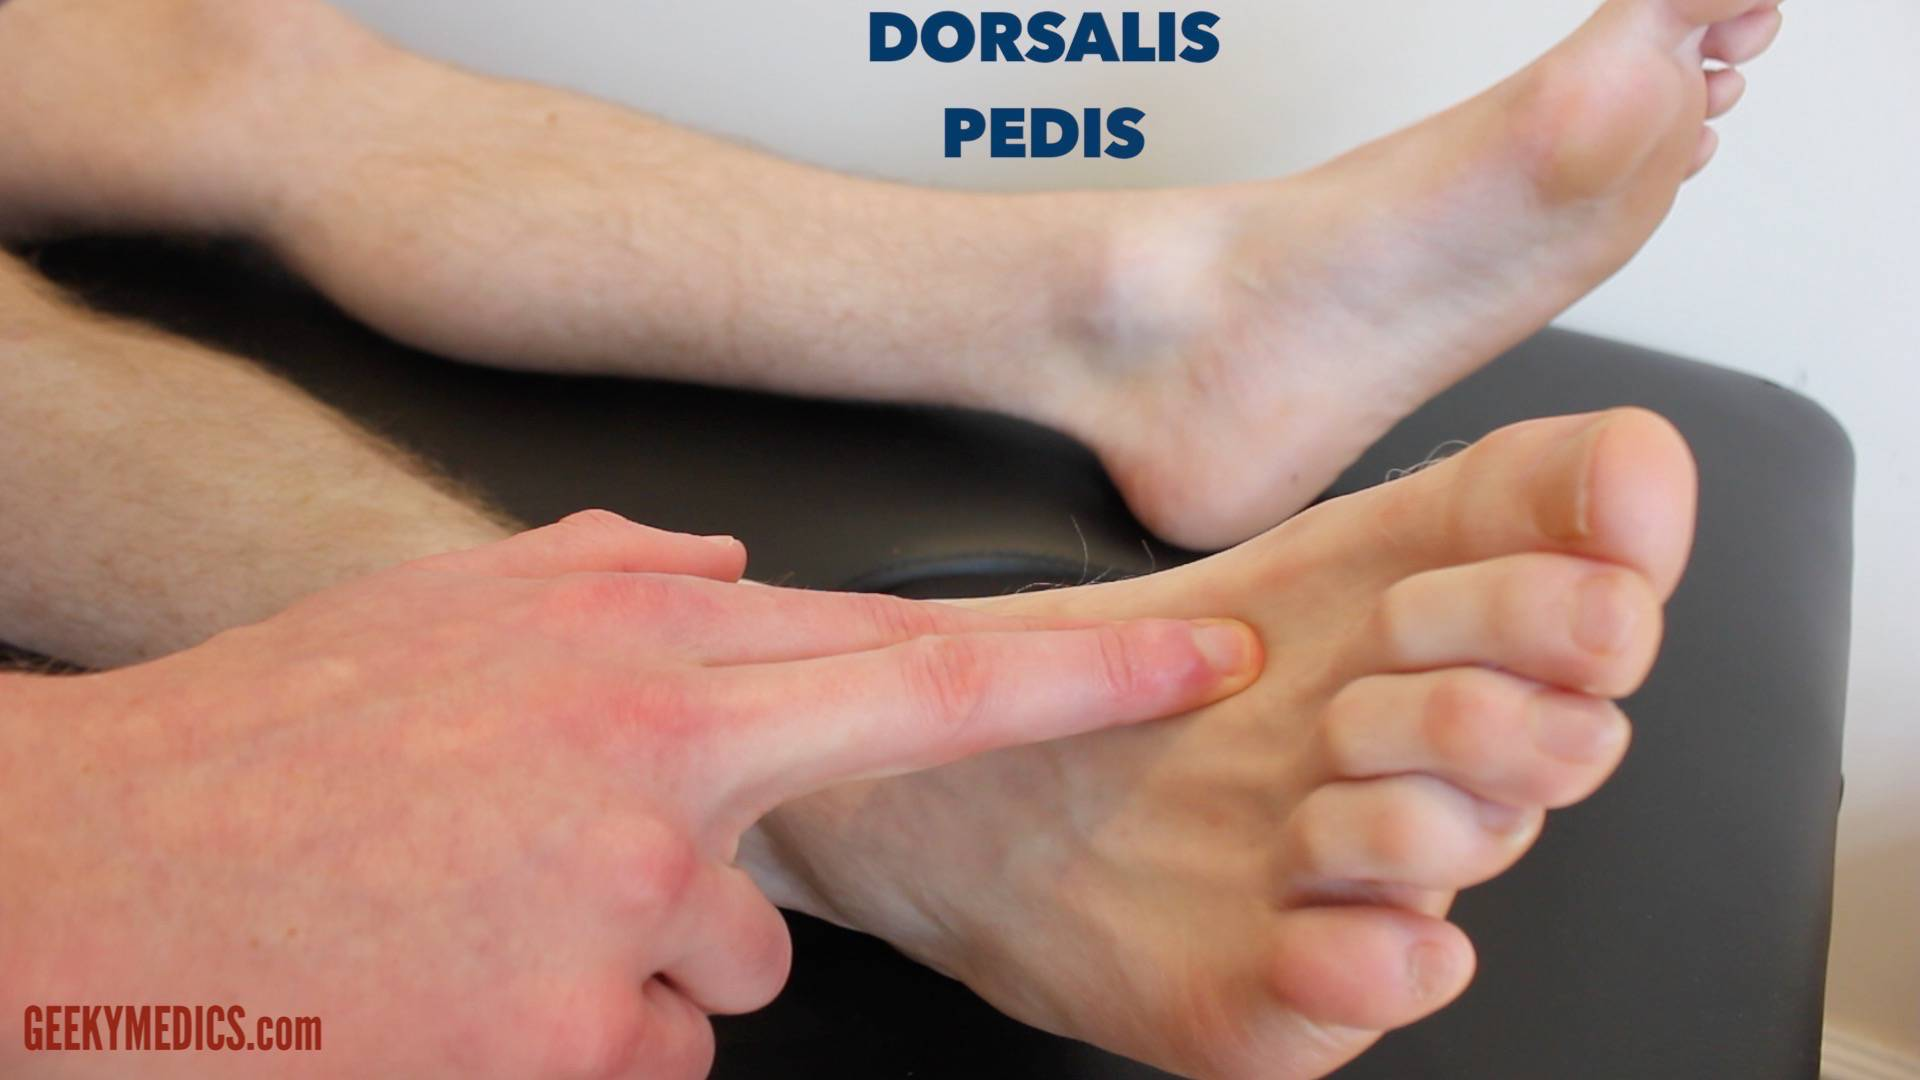 Dorsalis Pedis Pulse Diabetic Foot E...